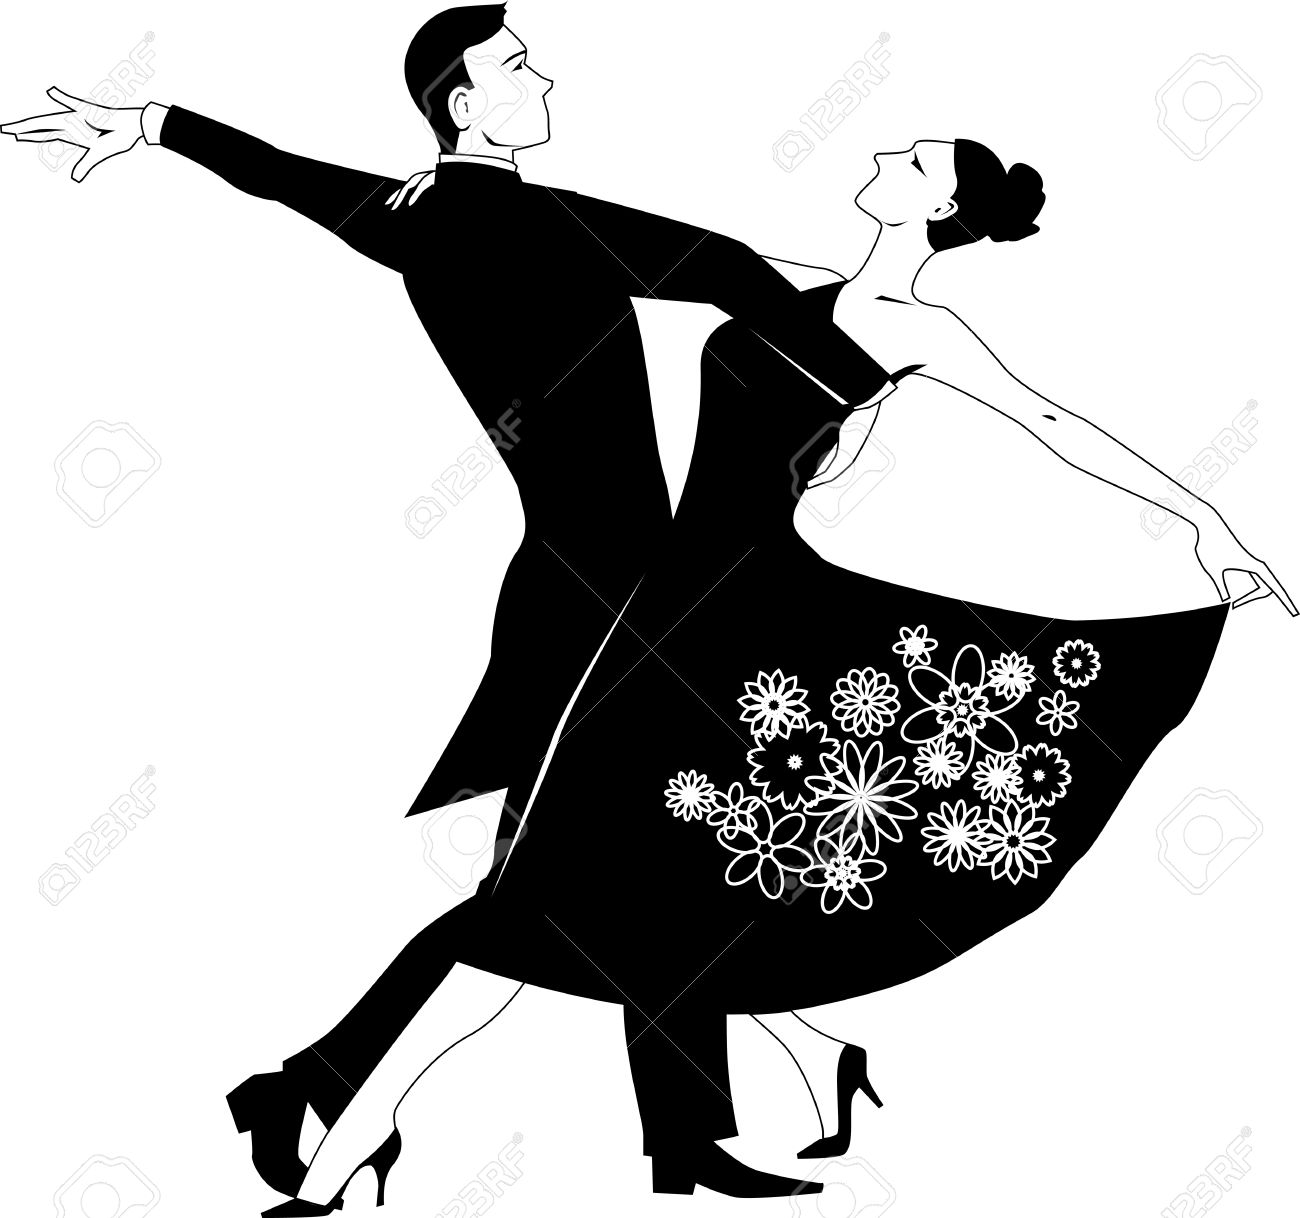 Black vector silhouette clip art of a couple dancing waltz, no...